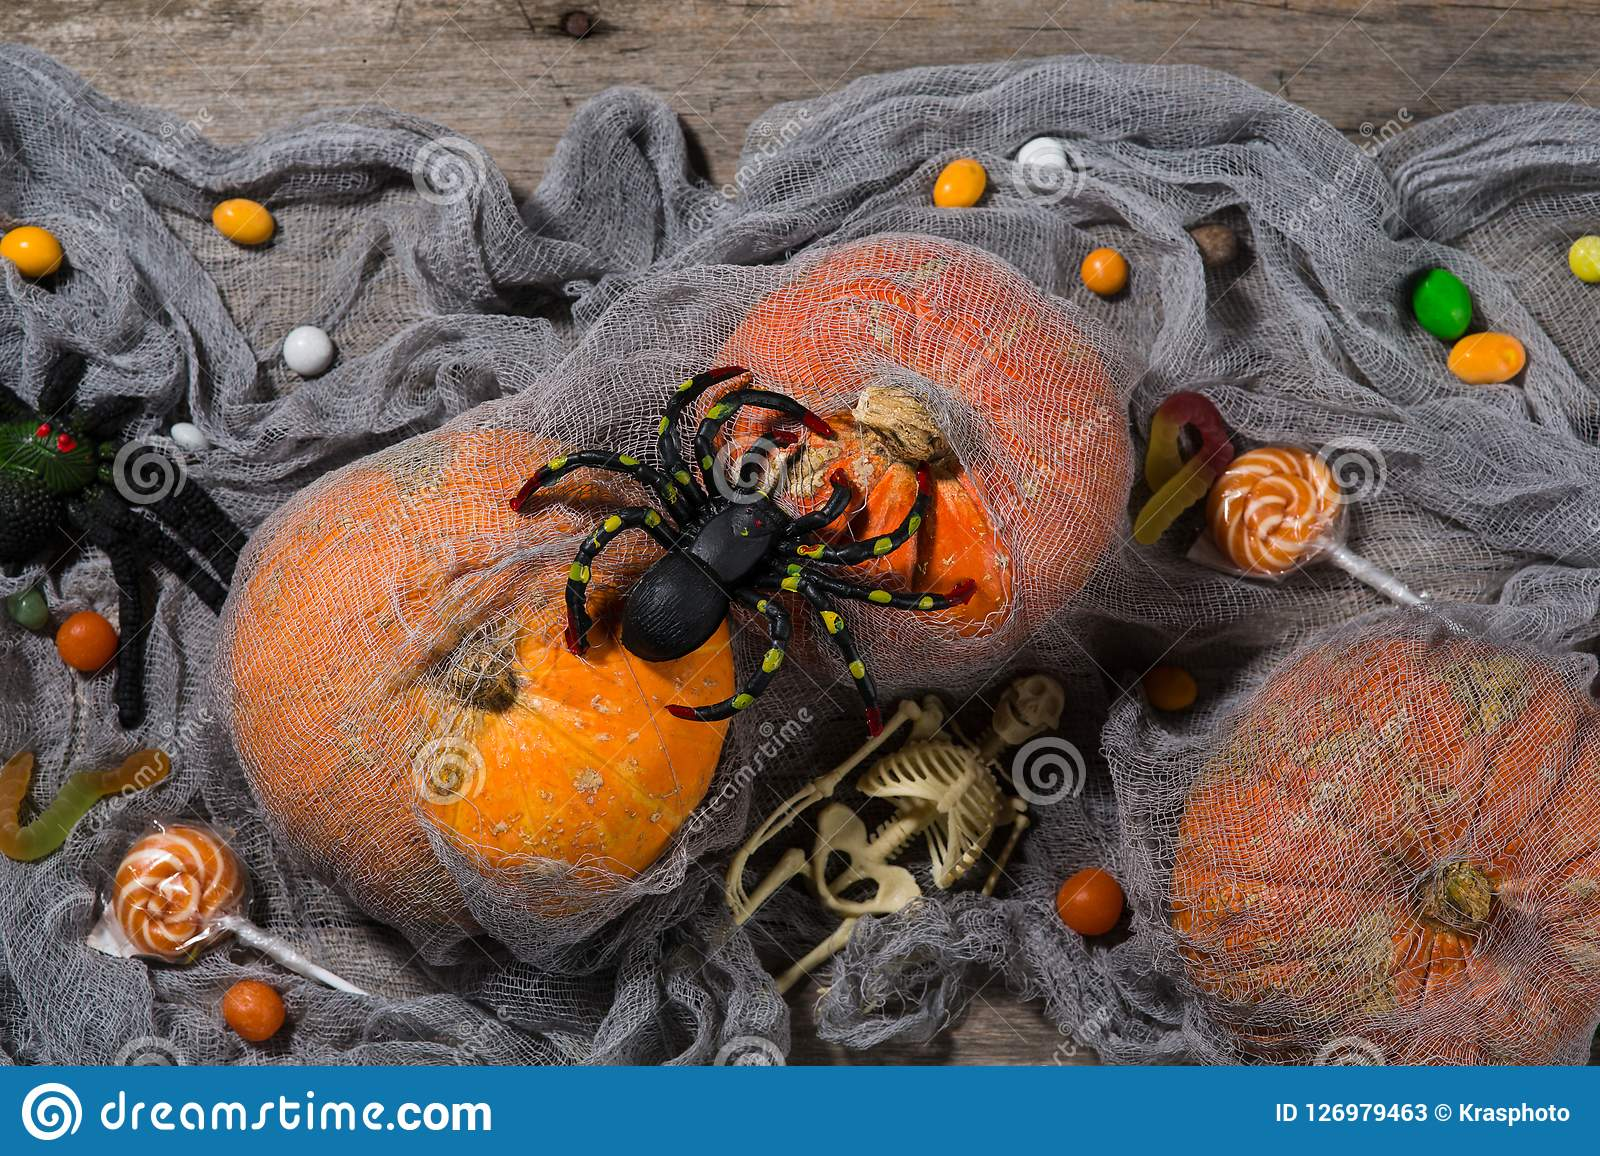 halloween pumpkins, spiders, horror stories and more on a wooden